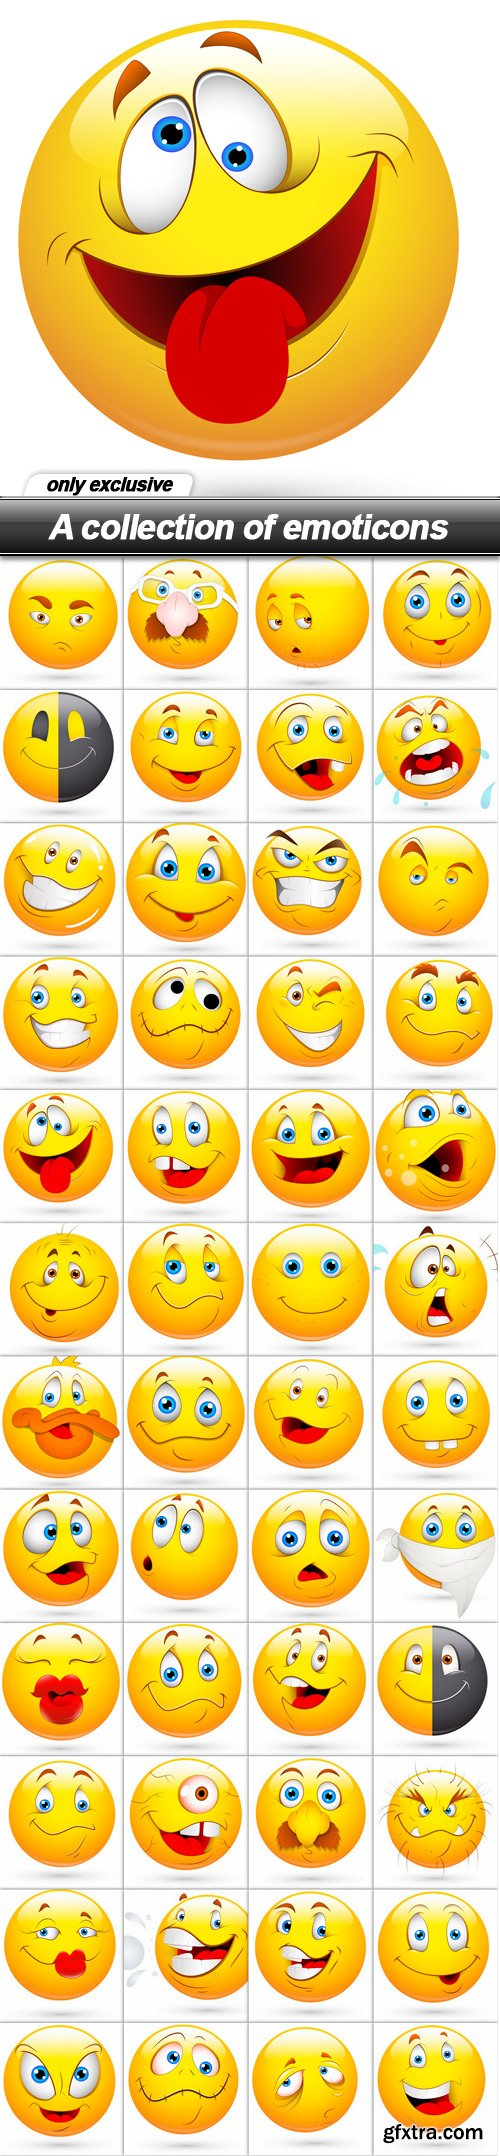 A collection of emoticons - 48 EPS